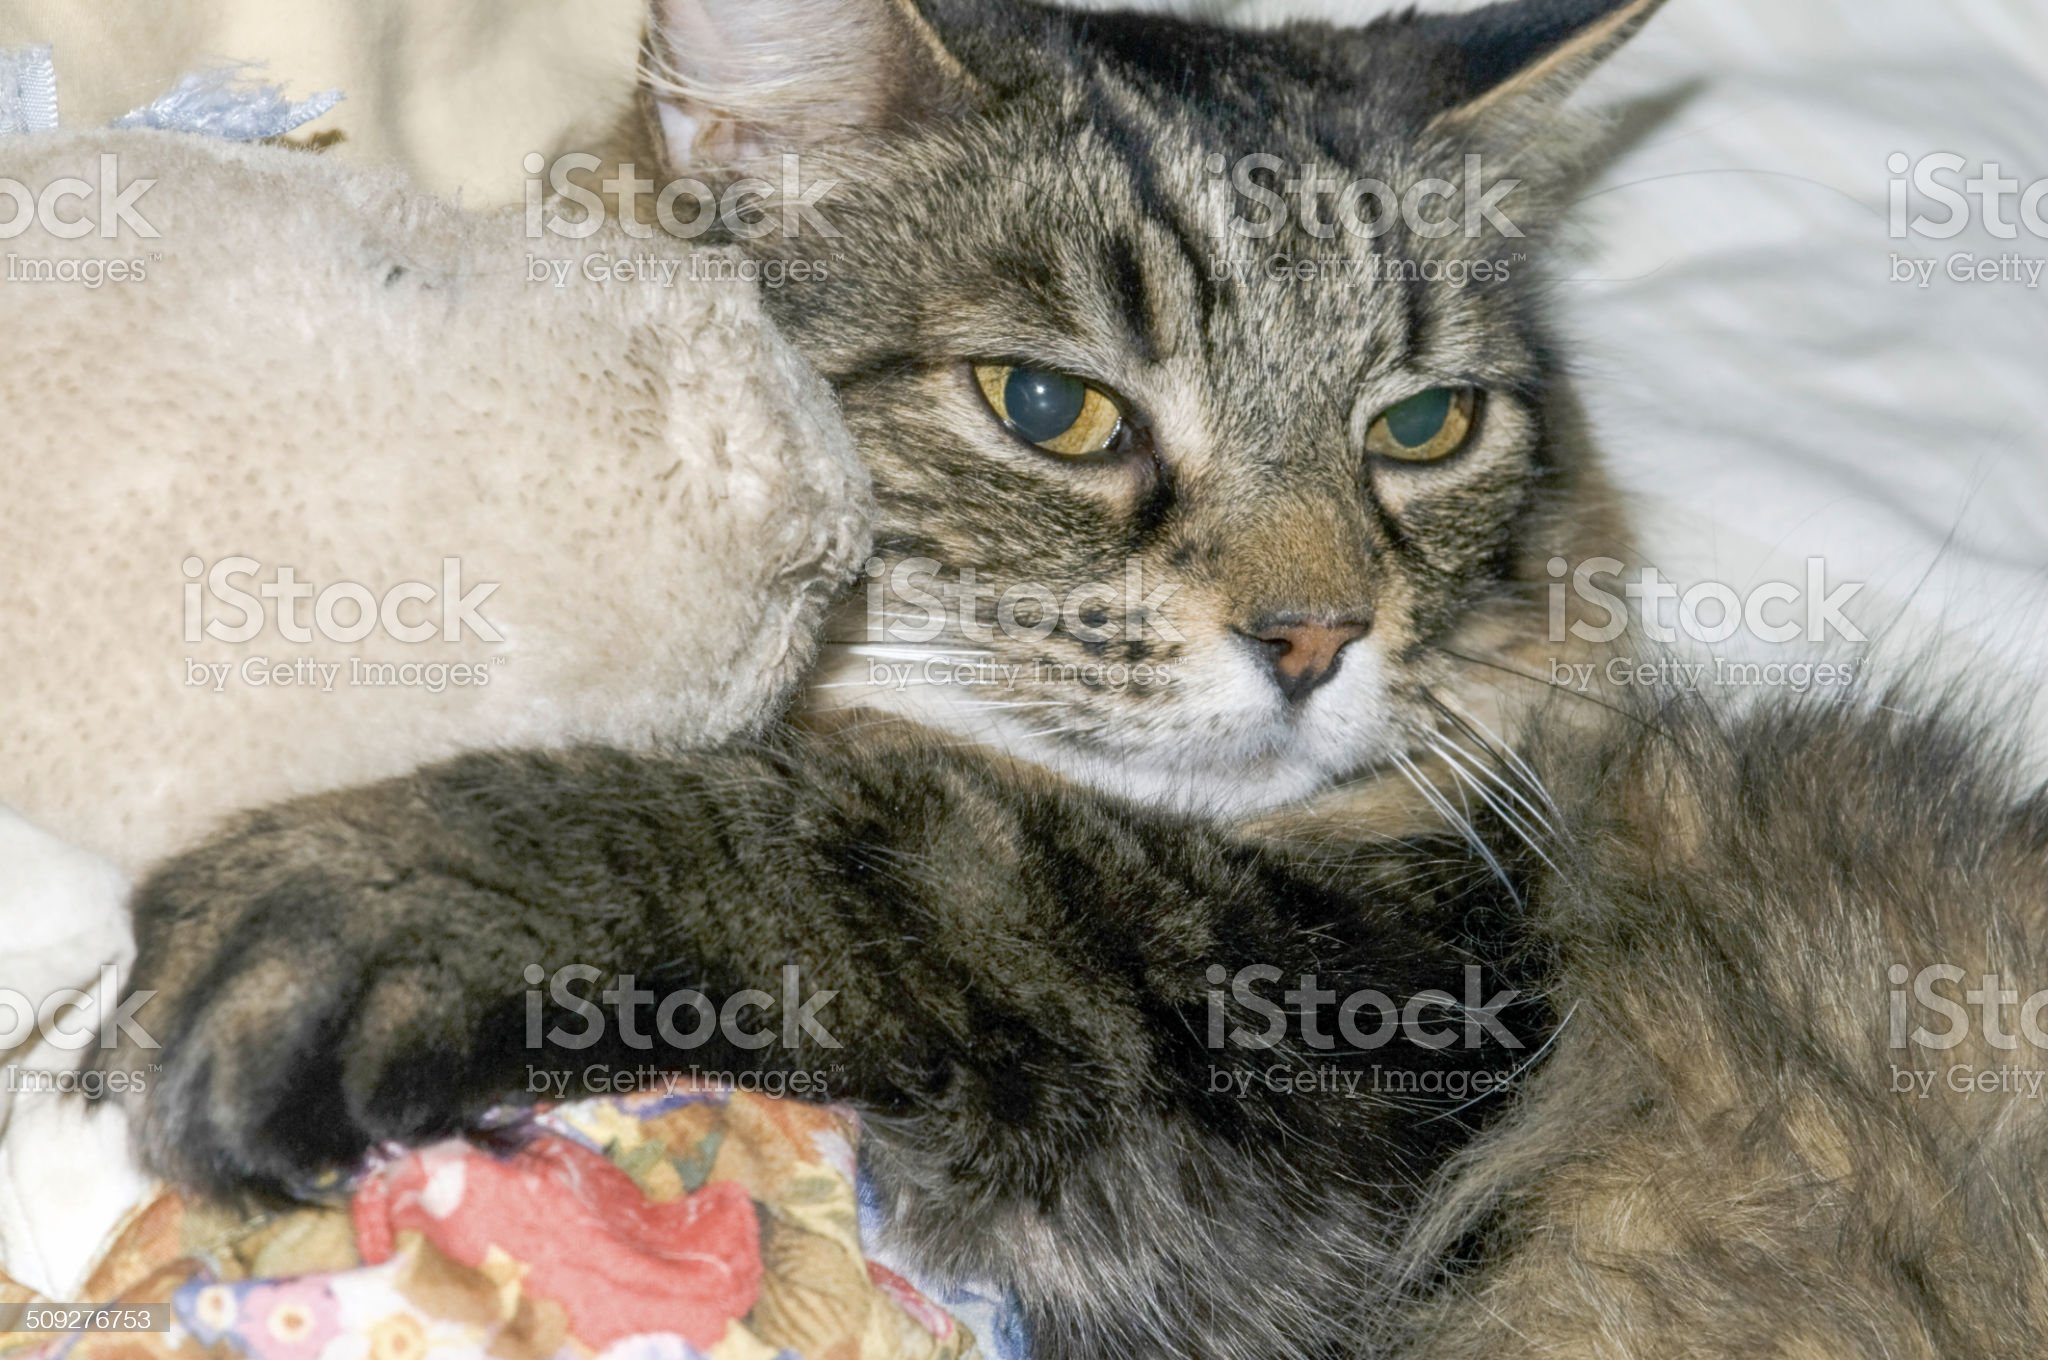 Cat lovingly holding a stuffed animal royalty-free stock photo